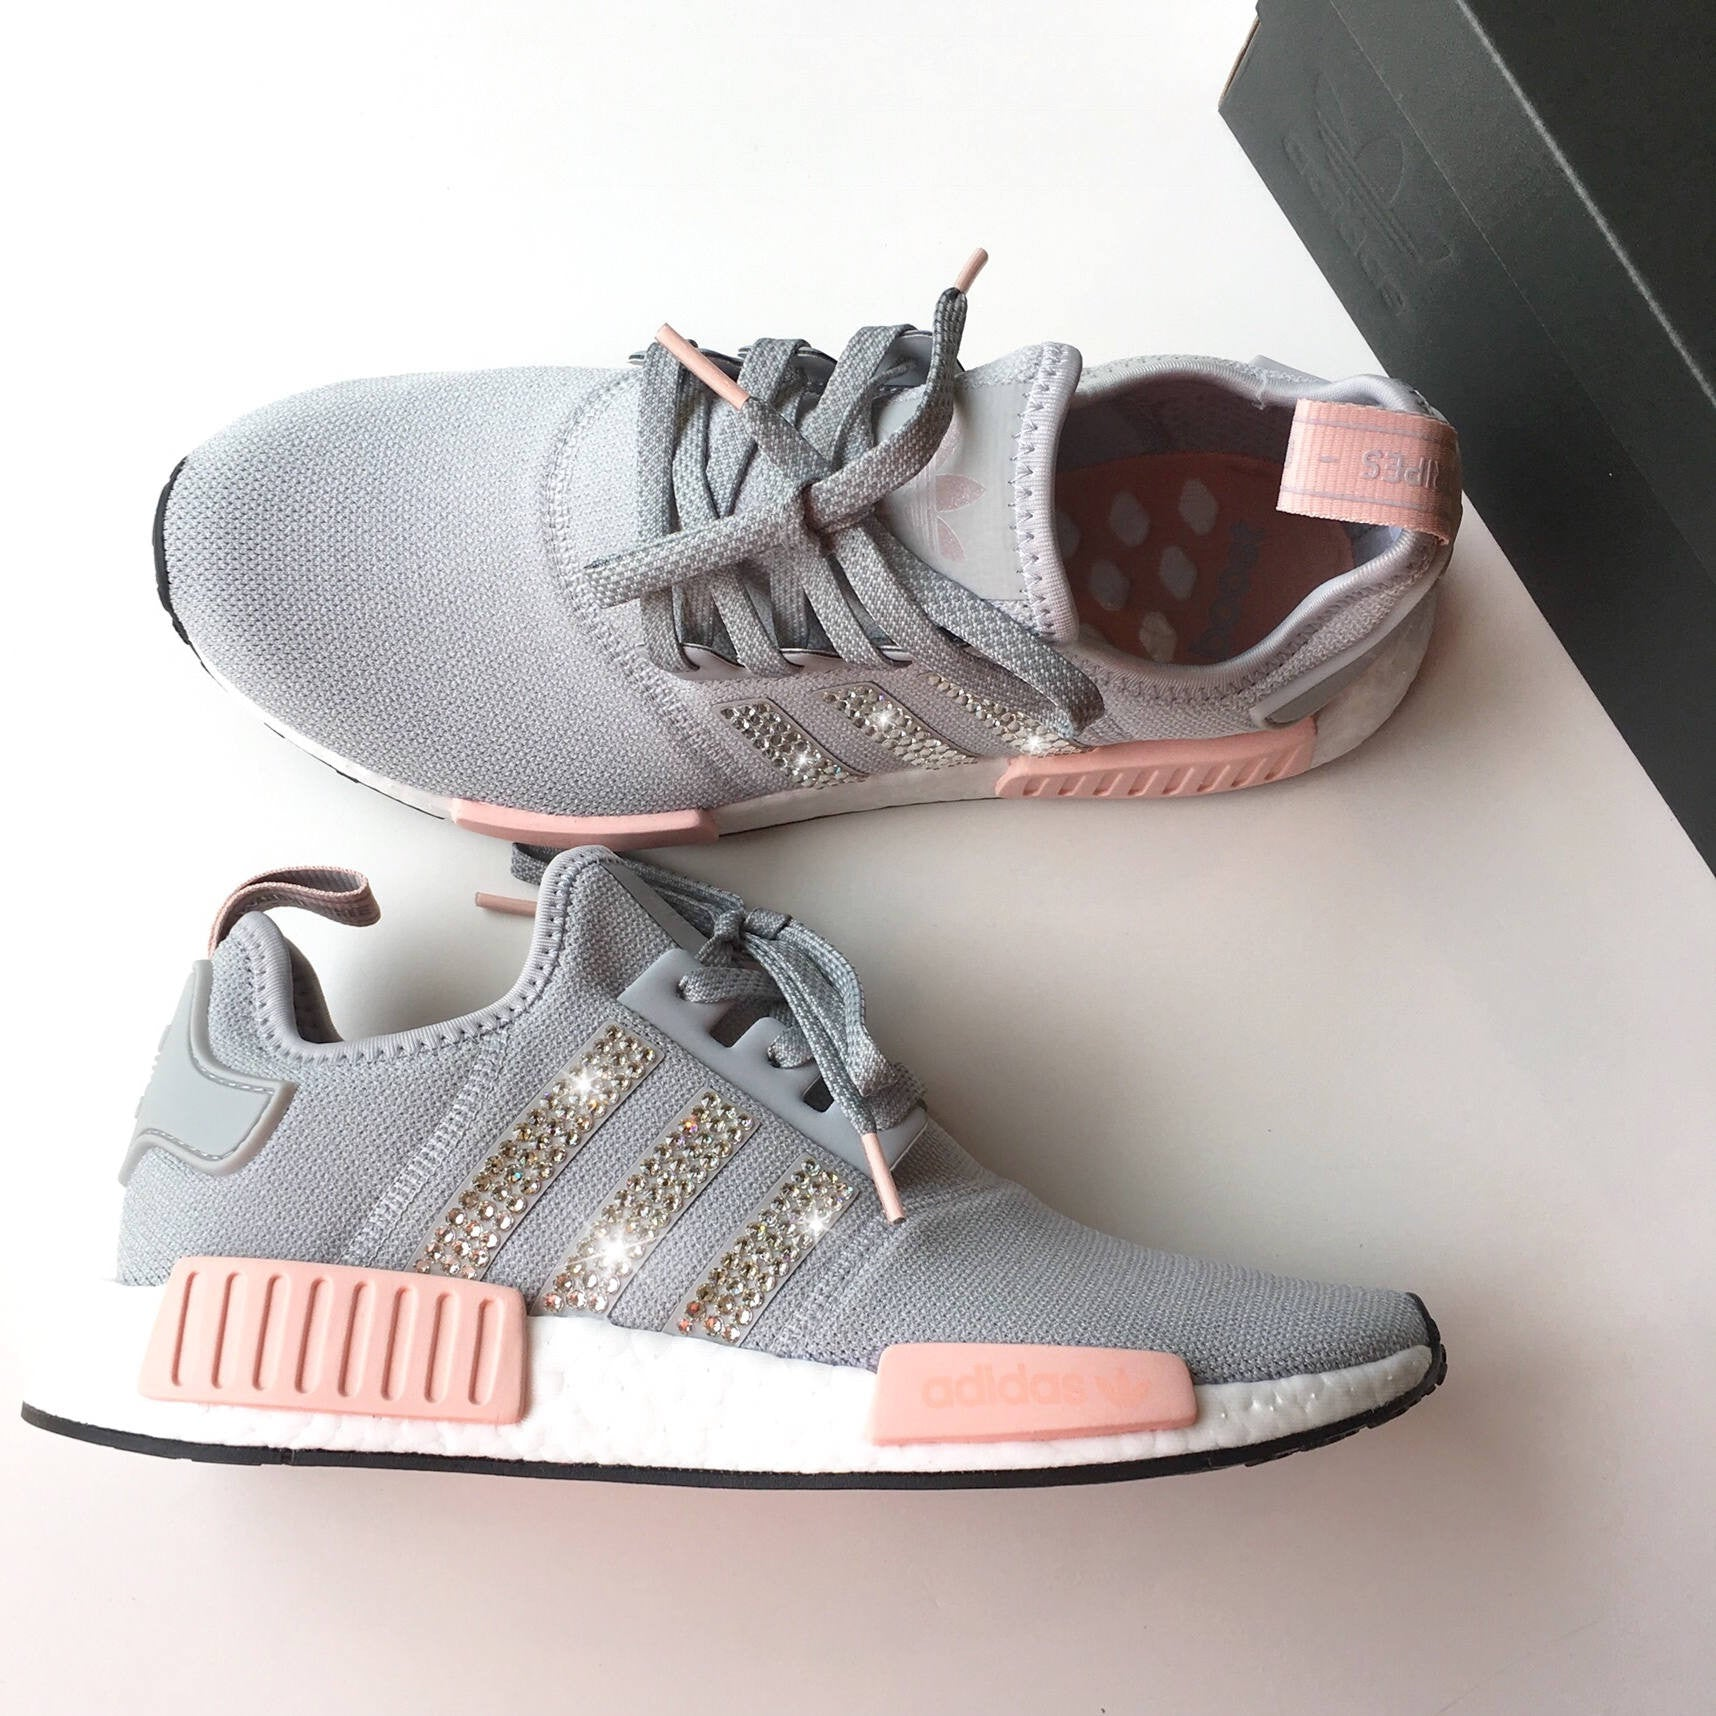 59d133d56 ... NEW Bling Adidas NMD with Swarovski Crystals   Women s Originals NMD R1  Runners Casual Shoes   ...